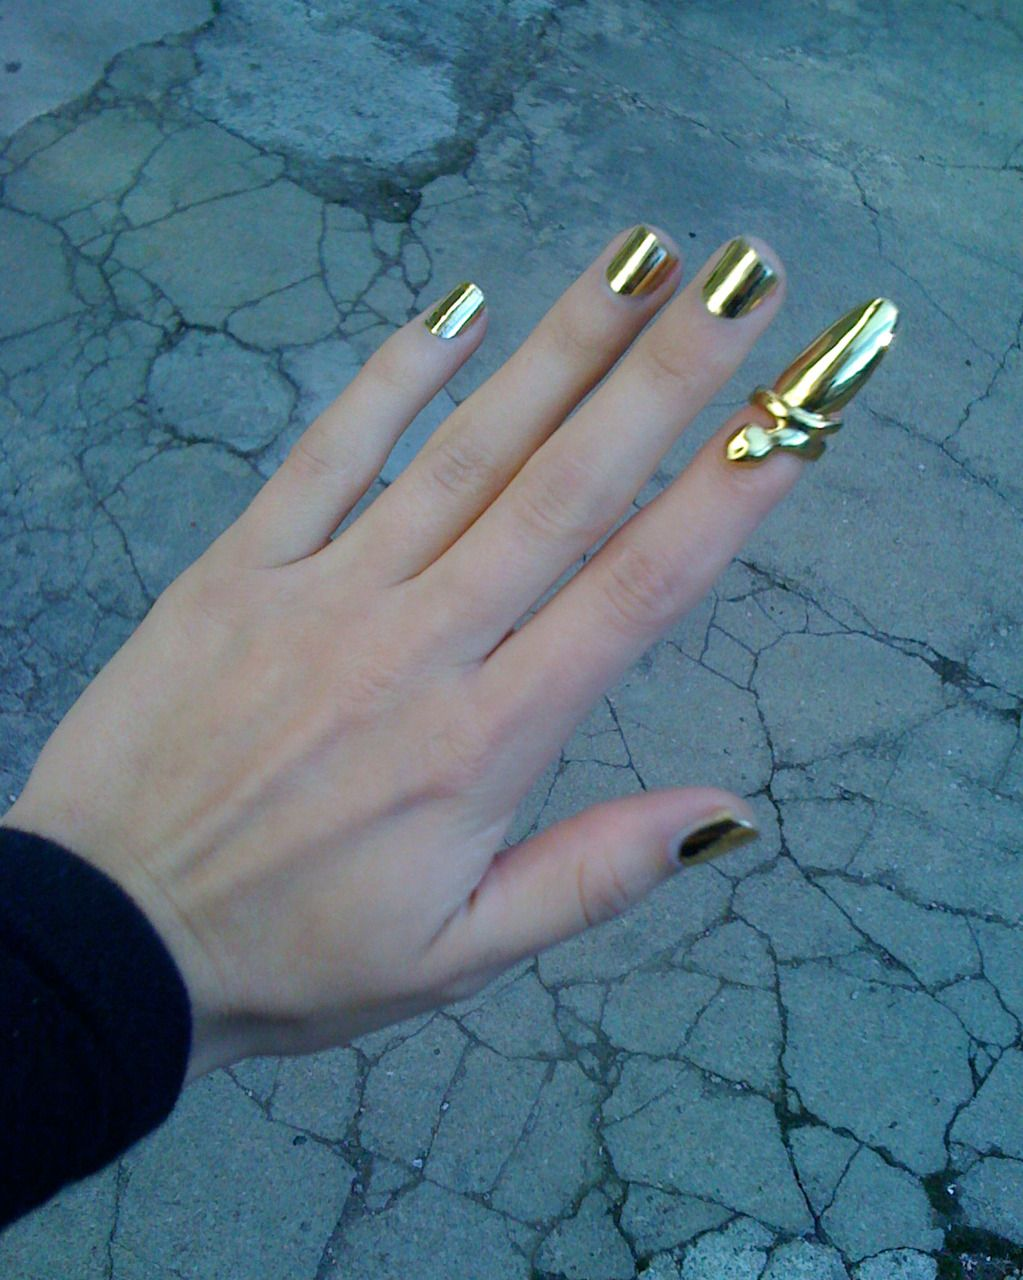 Lethal! @Kimberly L. (Serpensive in gold / Bijules)